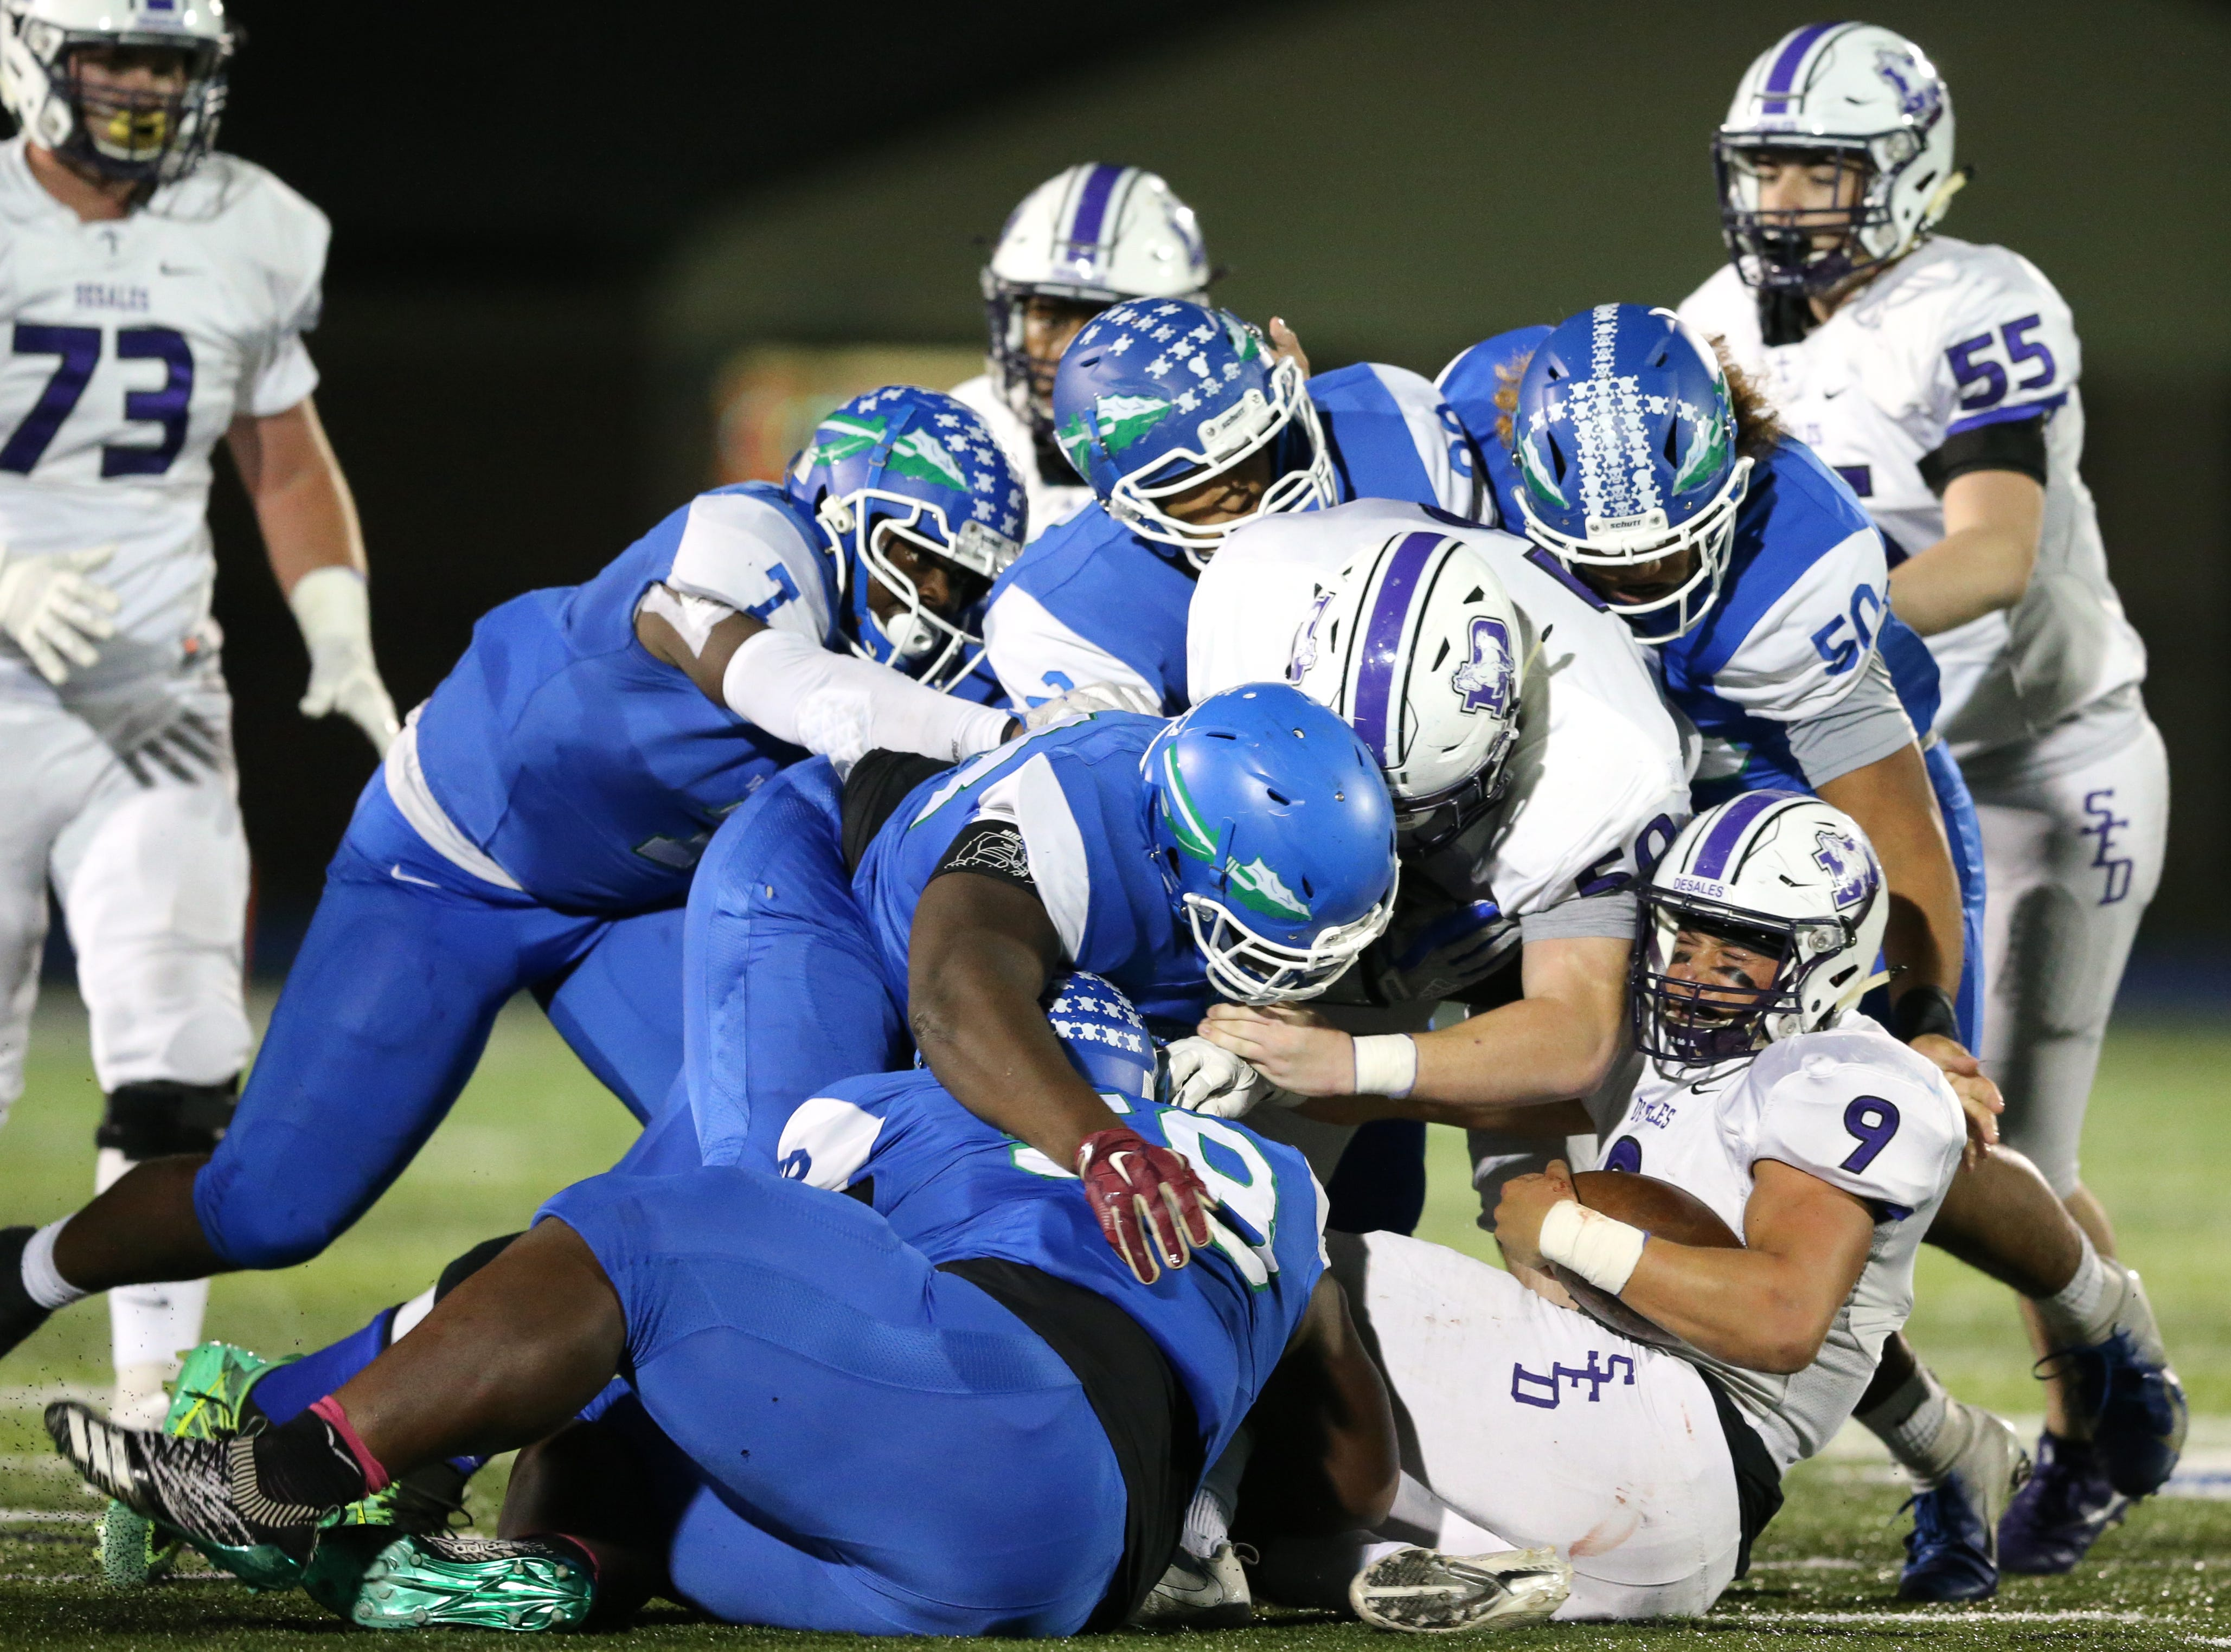 The Winton Woods Warriors defense gang tackles St. Francis de Sales Stallions quarterback Joey Velazquez (9) in the second quarter during a high school football game between St. Francis de Sales and Winton Woods, Friday, Oct. 19, 2018, at Winton Woods High School in Forest Park, Ohio.